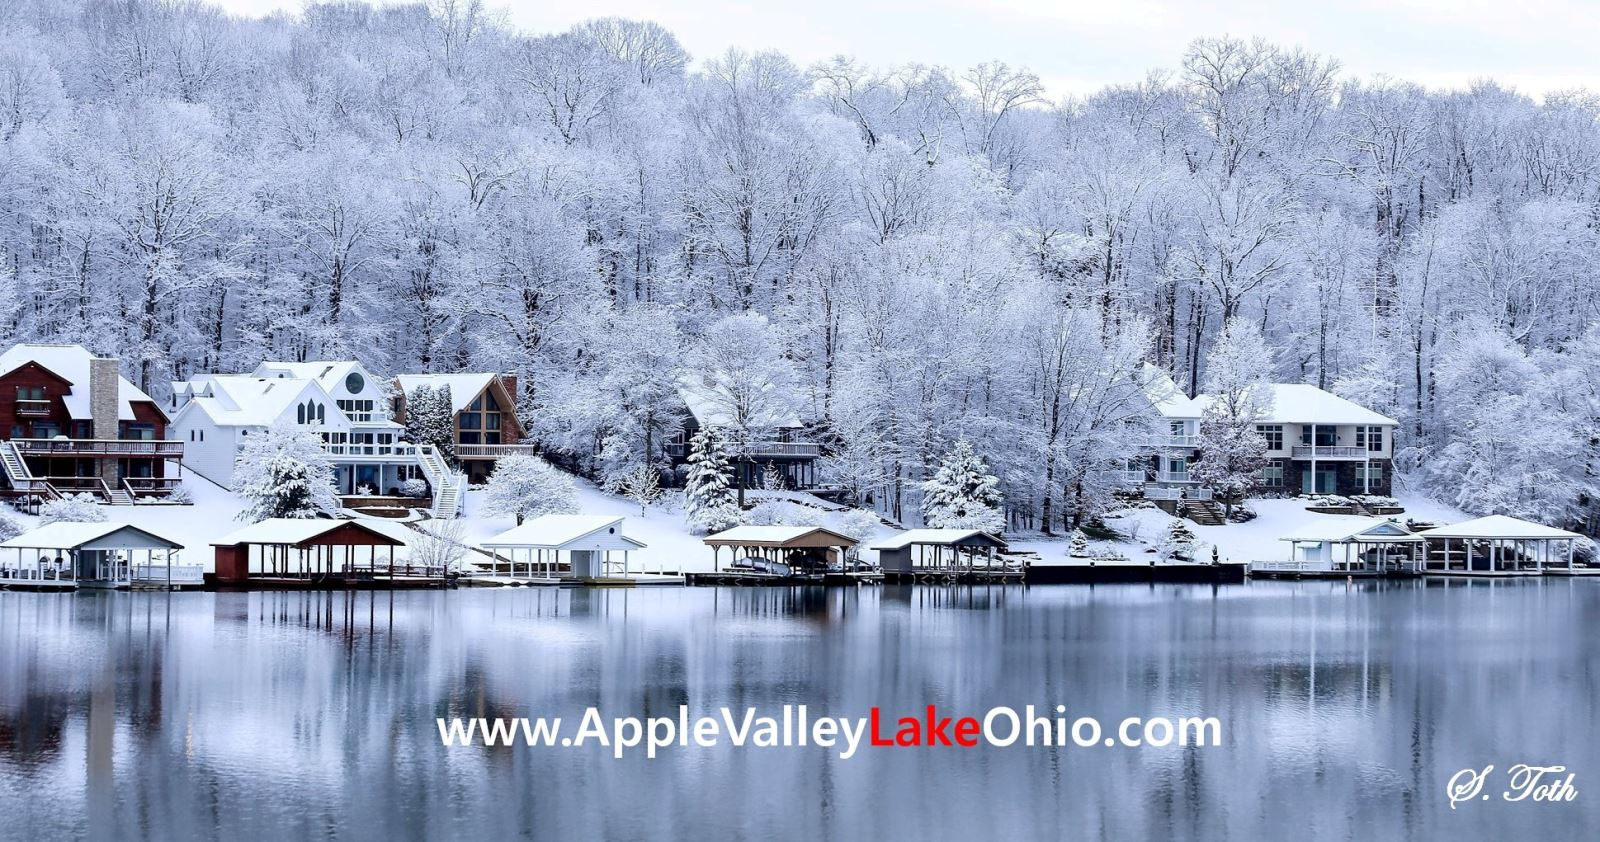 Weather at Apple Valley Lake Ohio - Winter